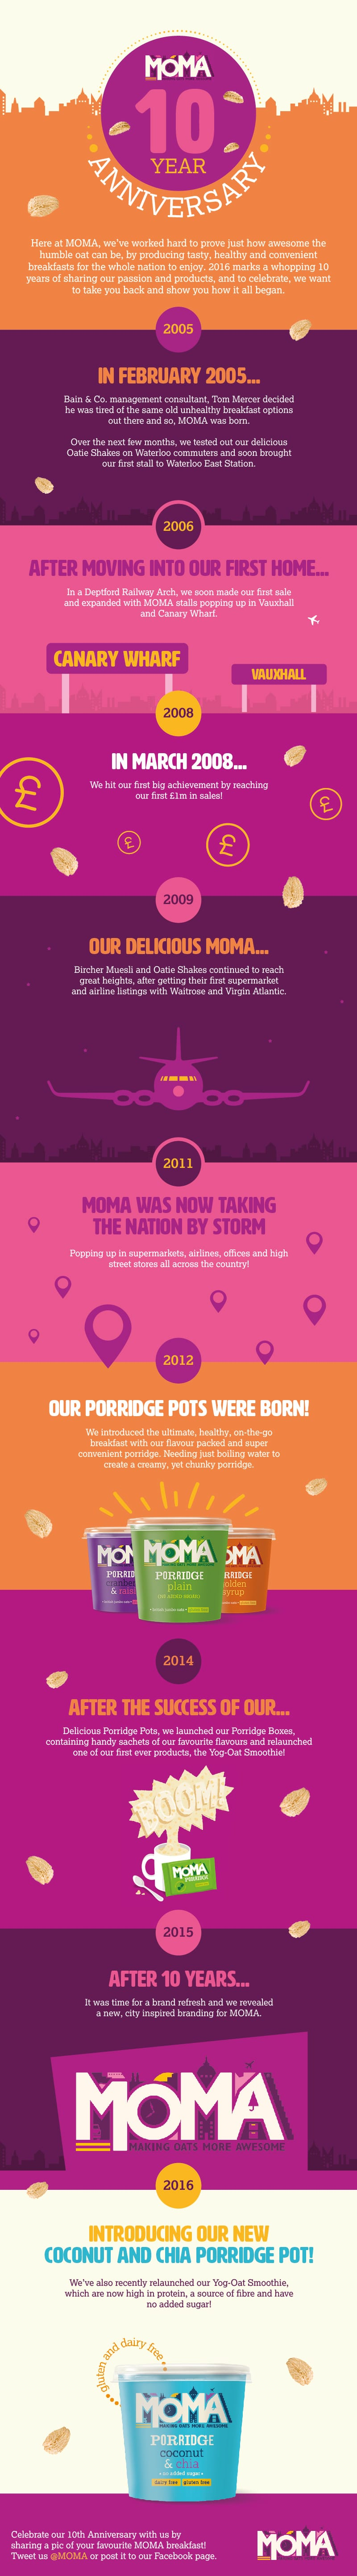 Moma 10 Year Infographic